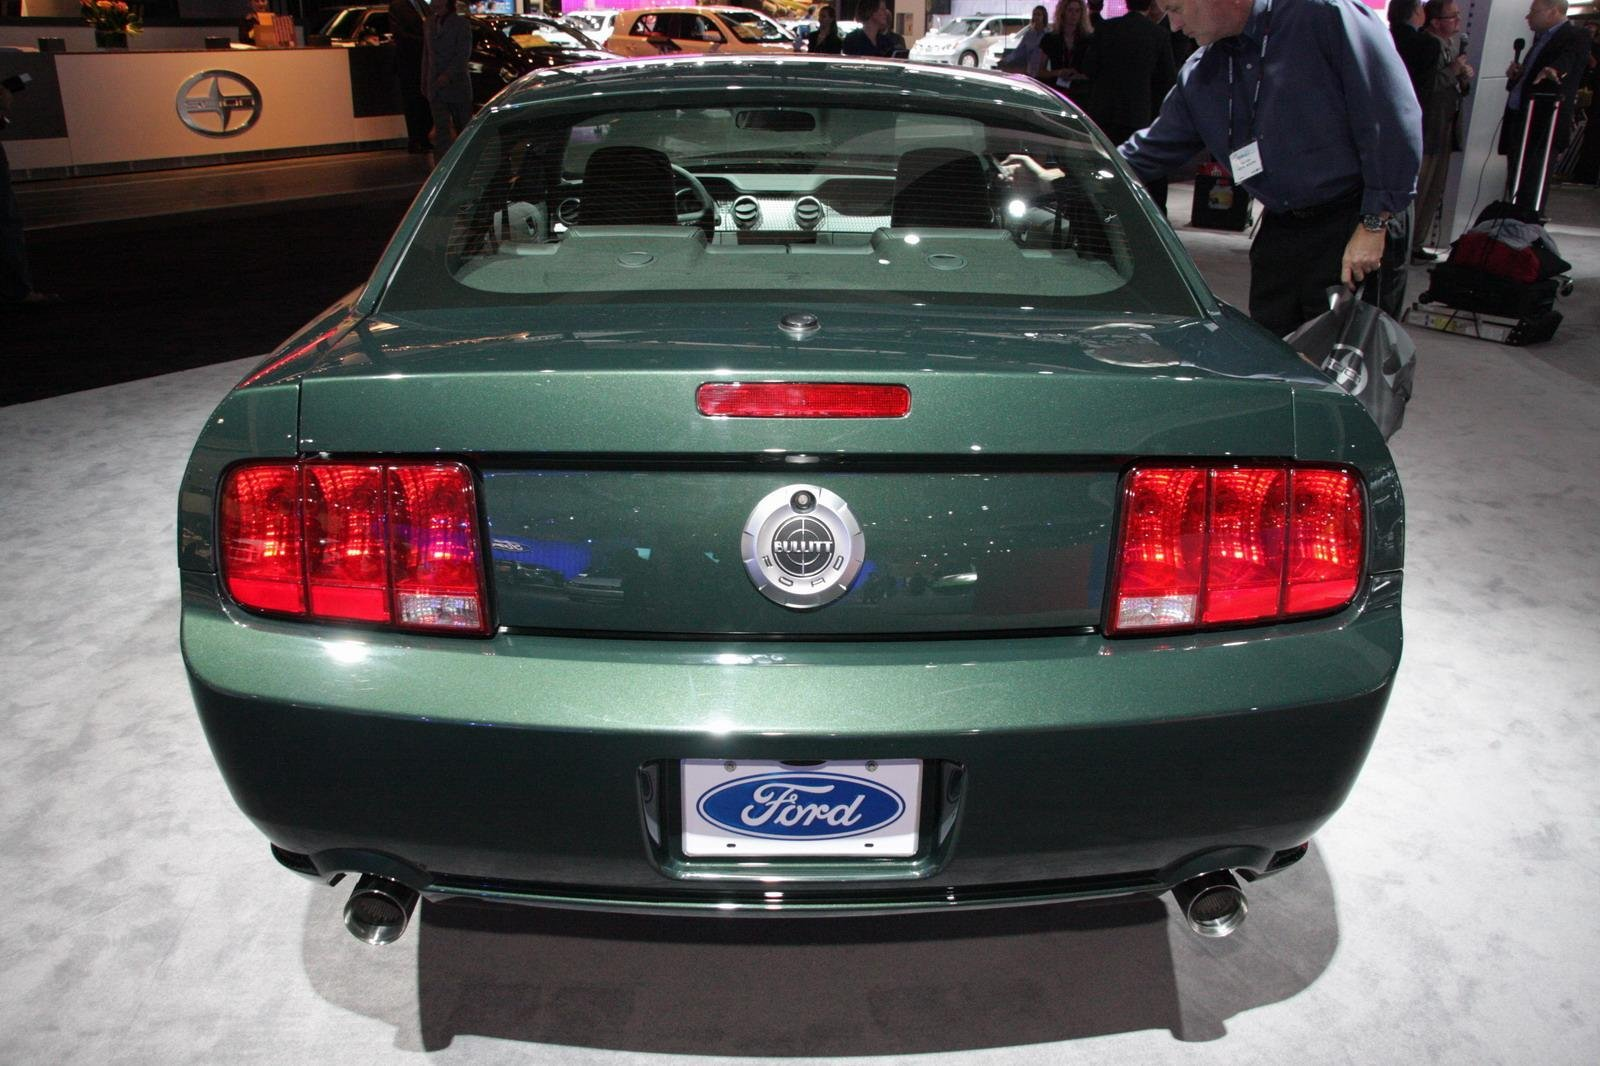 2008 ford mustang bullitt picture 215044 car review top speed. Black Bedroom Furniture Sets. Home Design Ideas